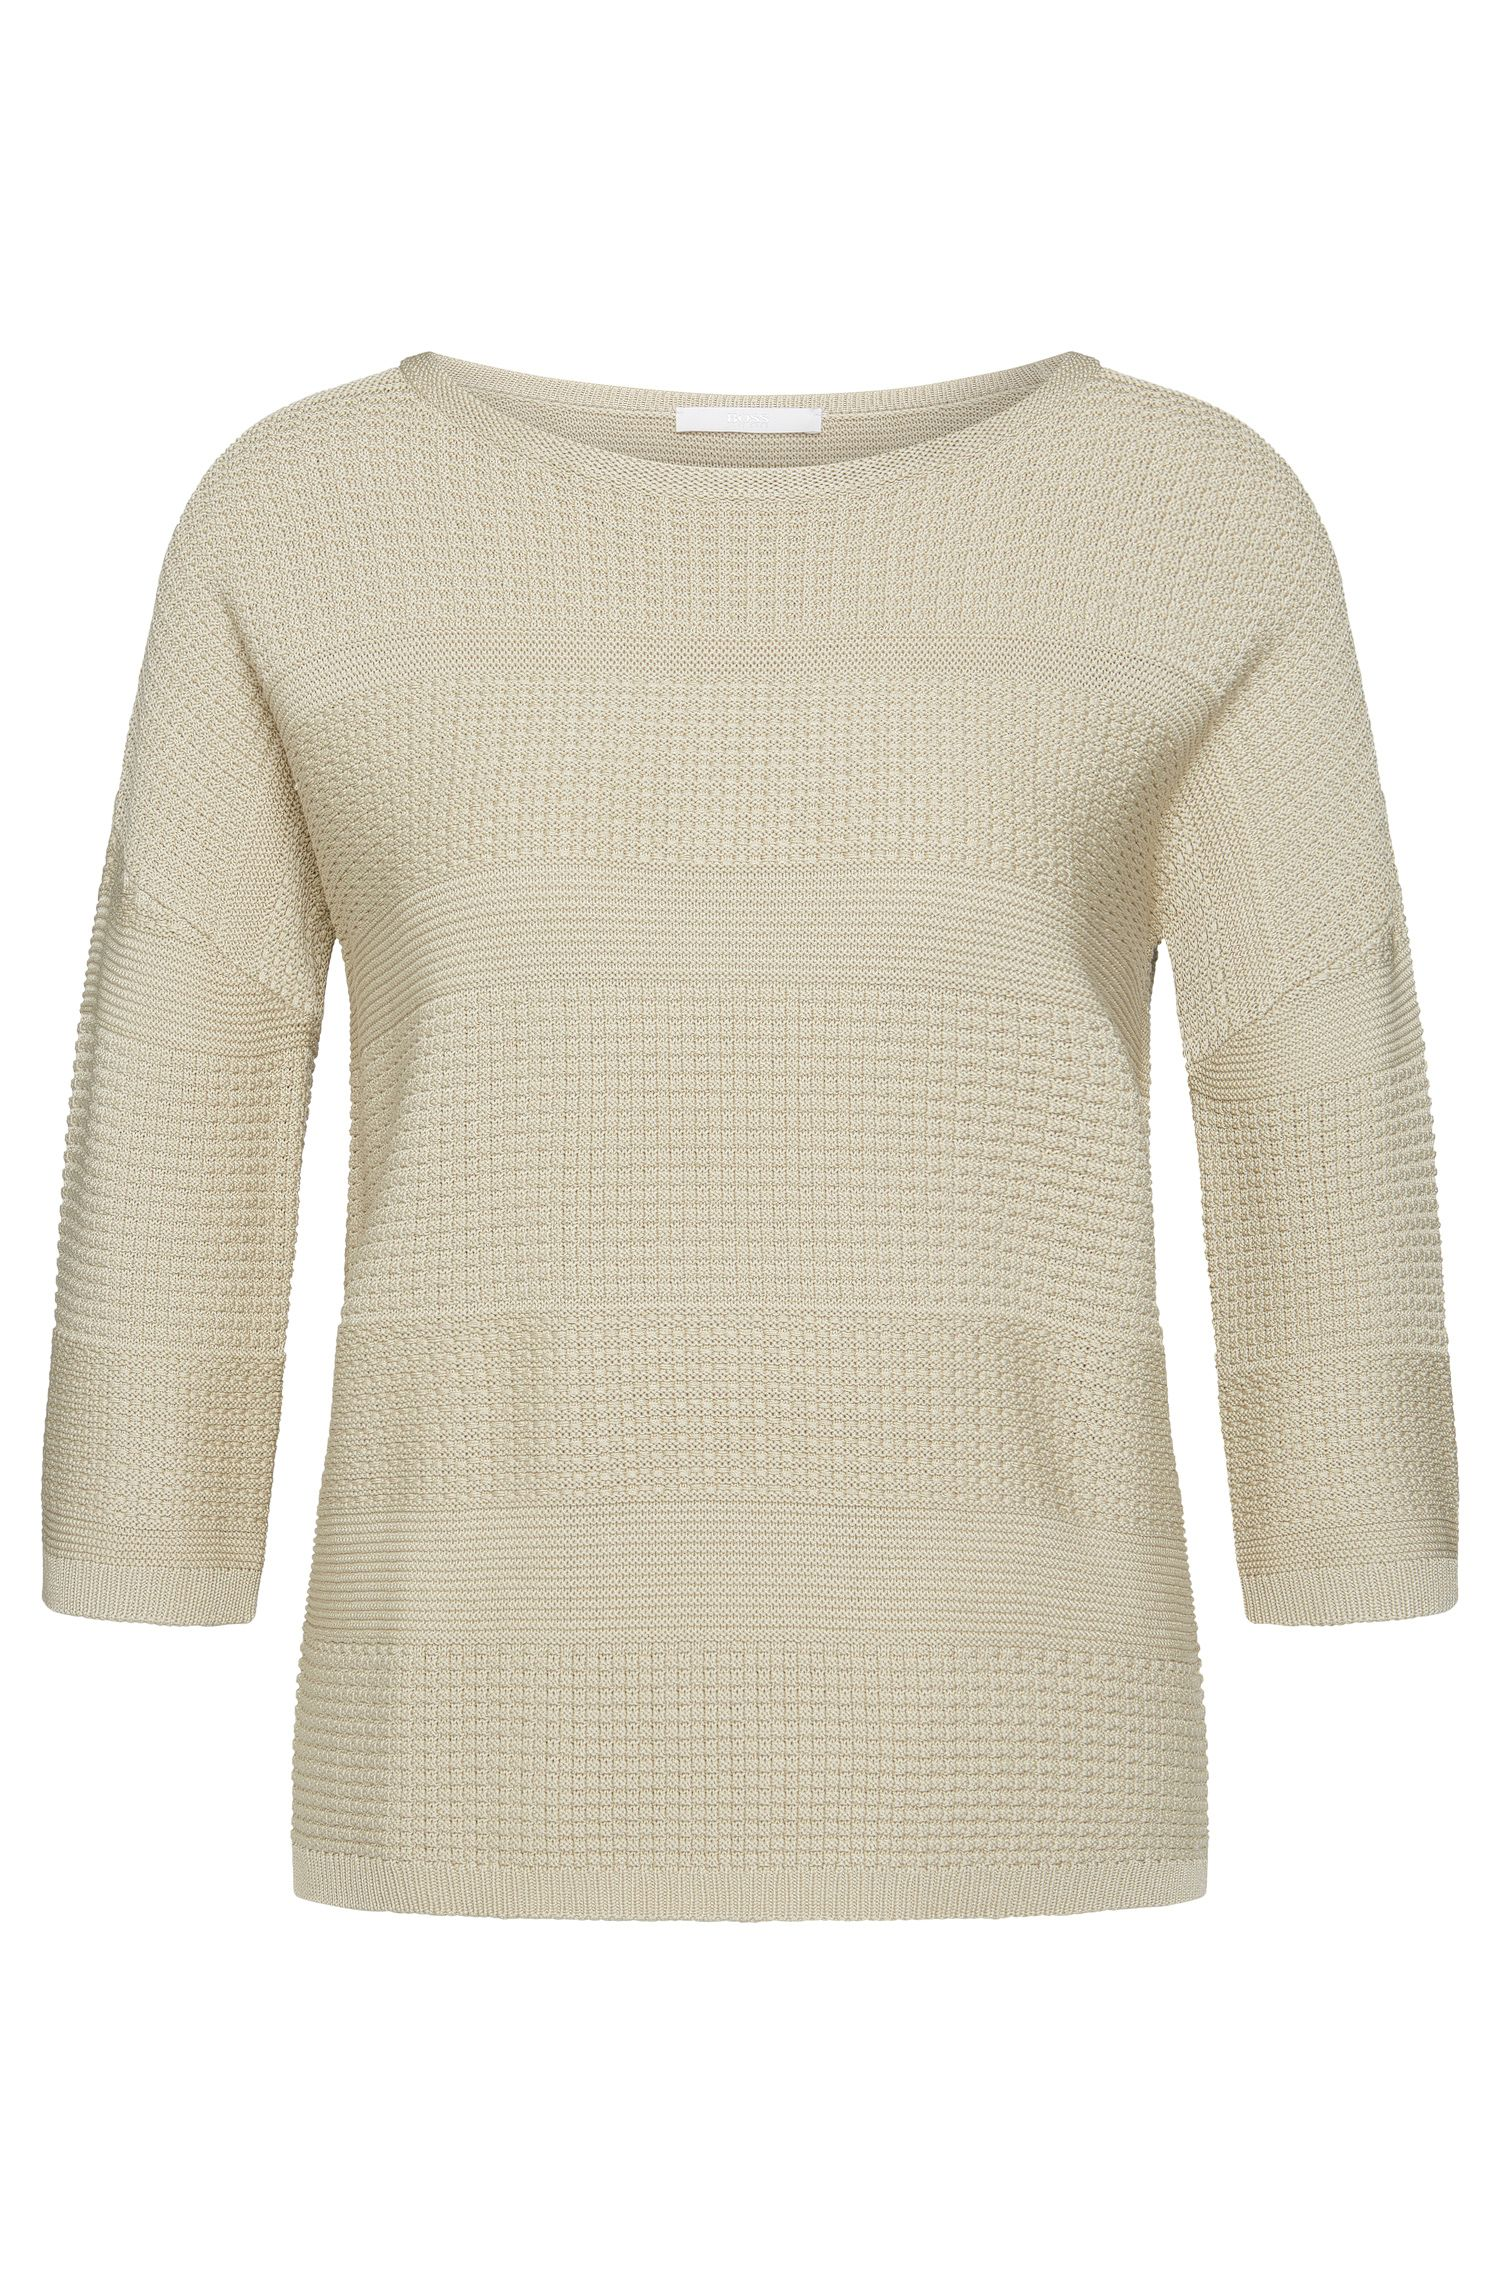 Straight-cut sweater in viscose blend with cotton: 'Fiammetta'